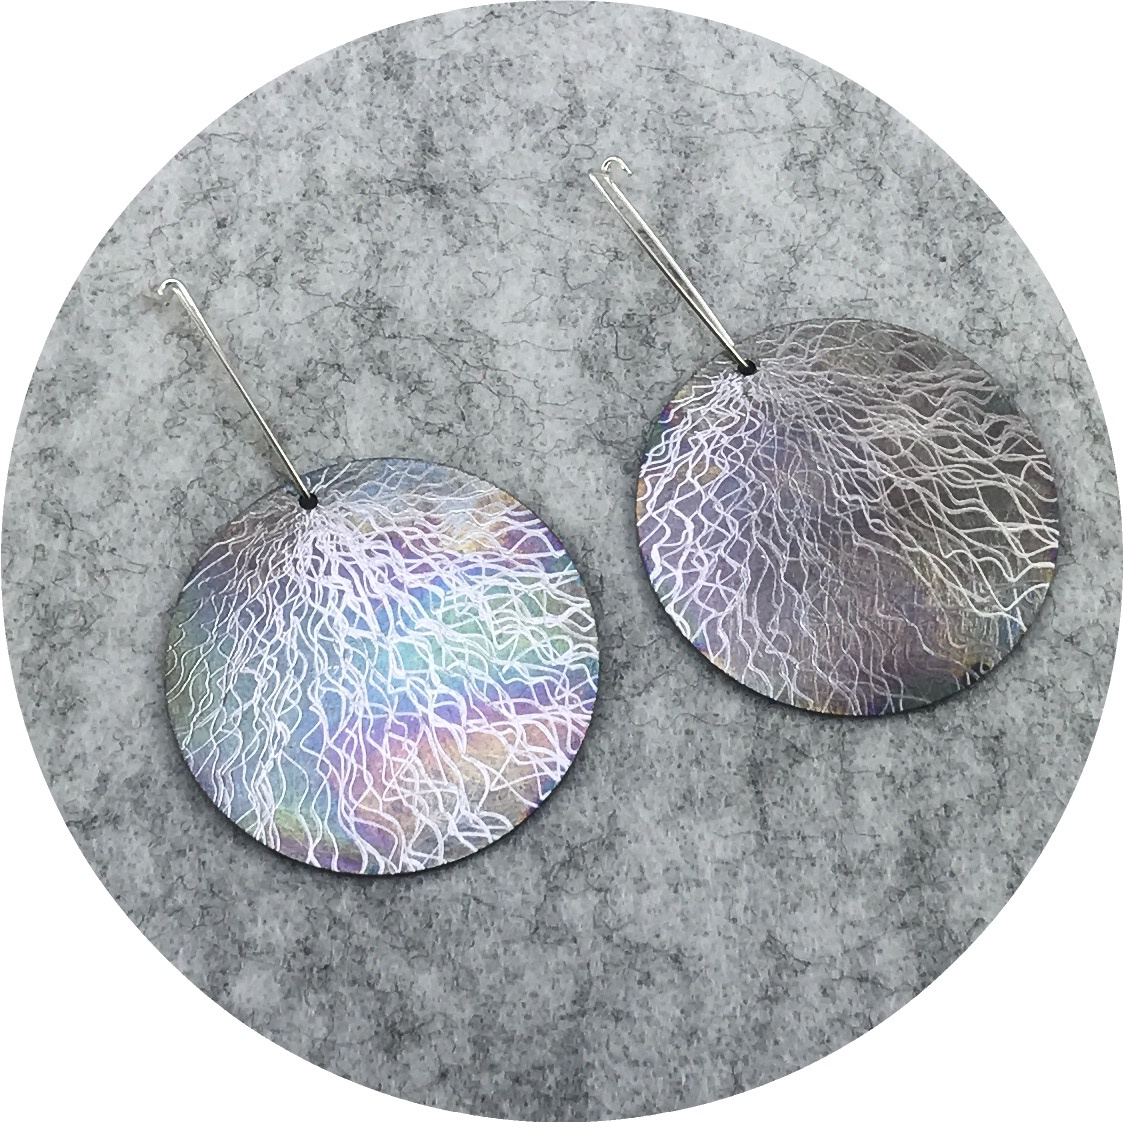 Tanja Von Behrens - Large Drop Circle Lighting Storm Earrings in Sterling Silver and Heat Coloured Titanium.